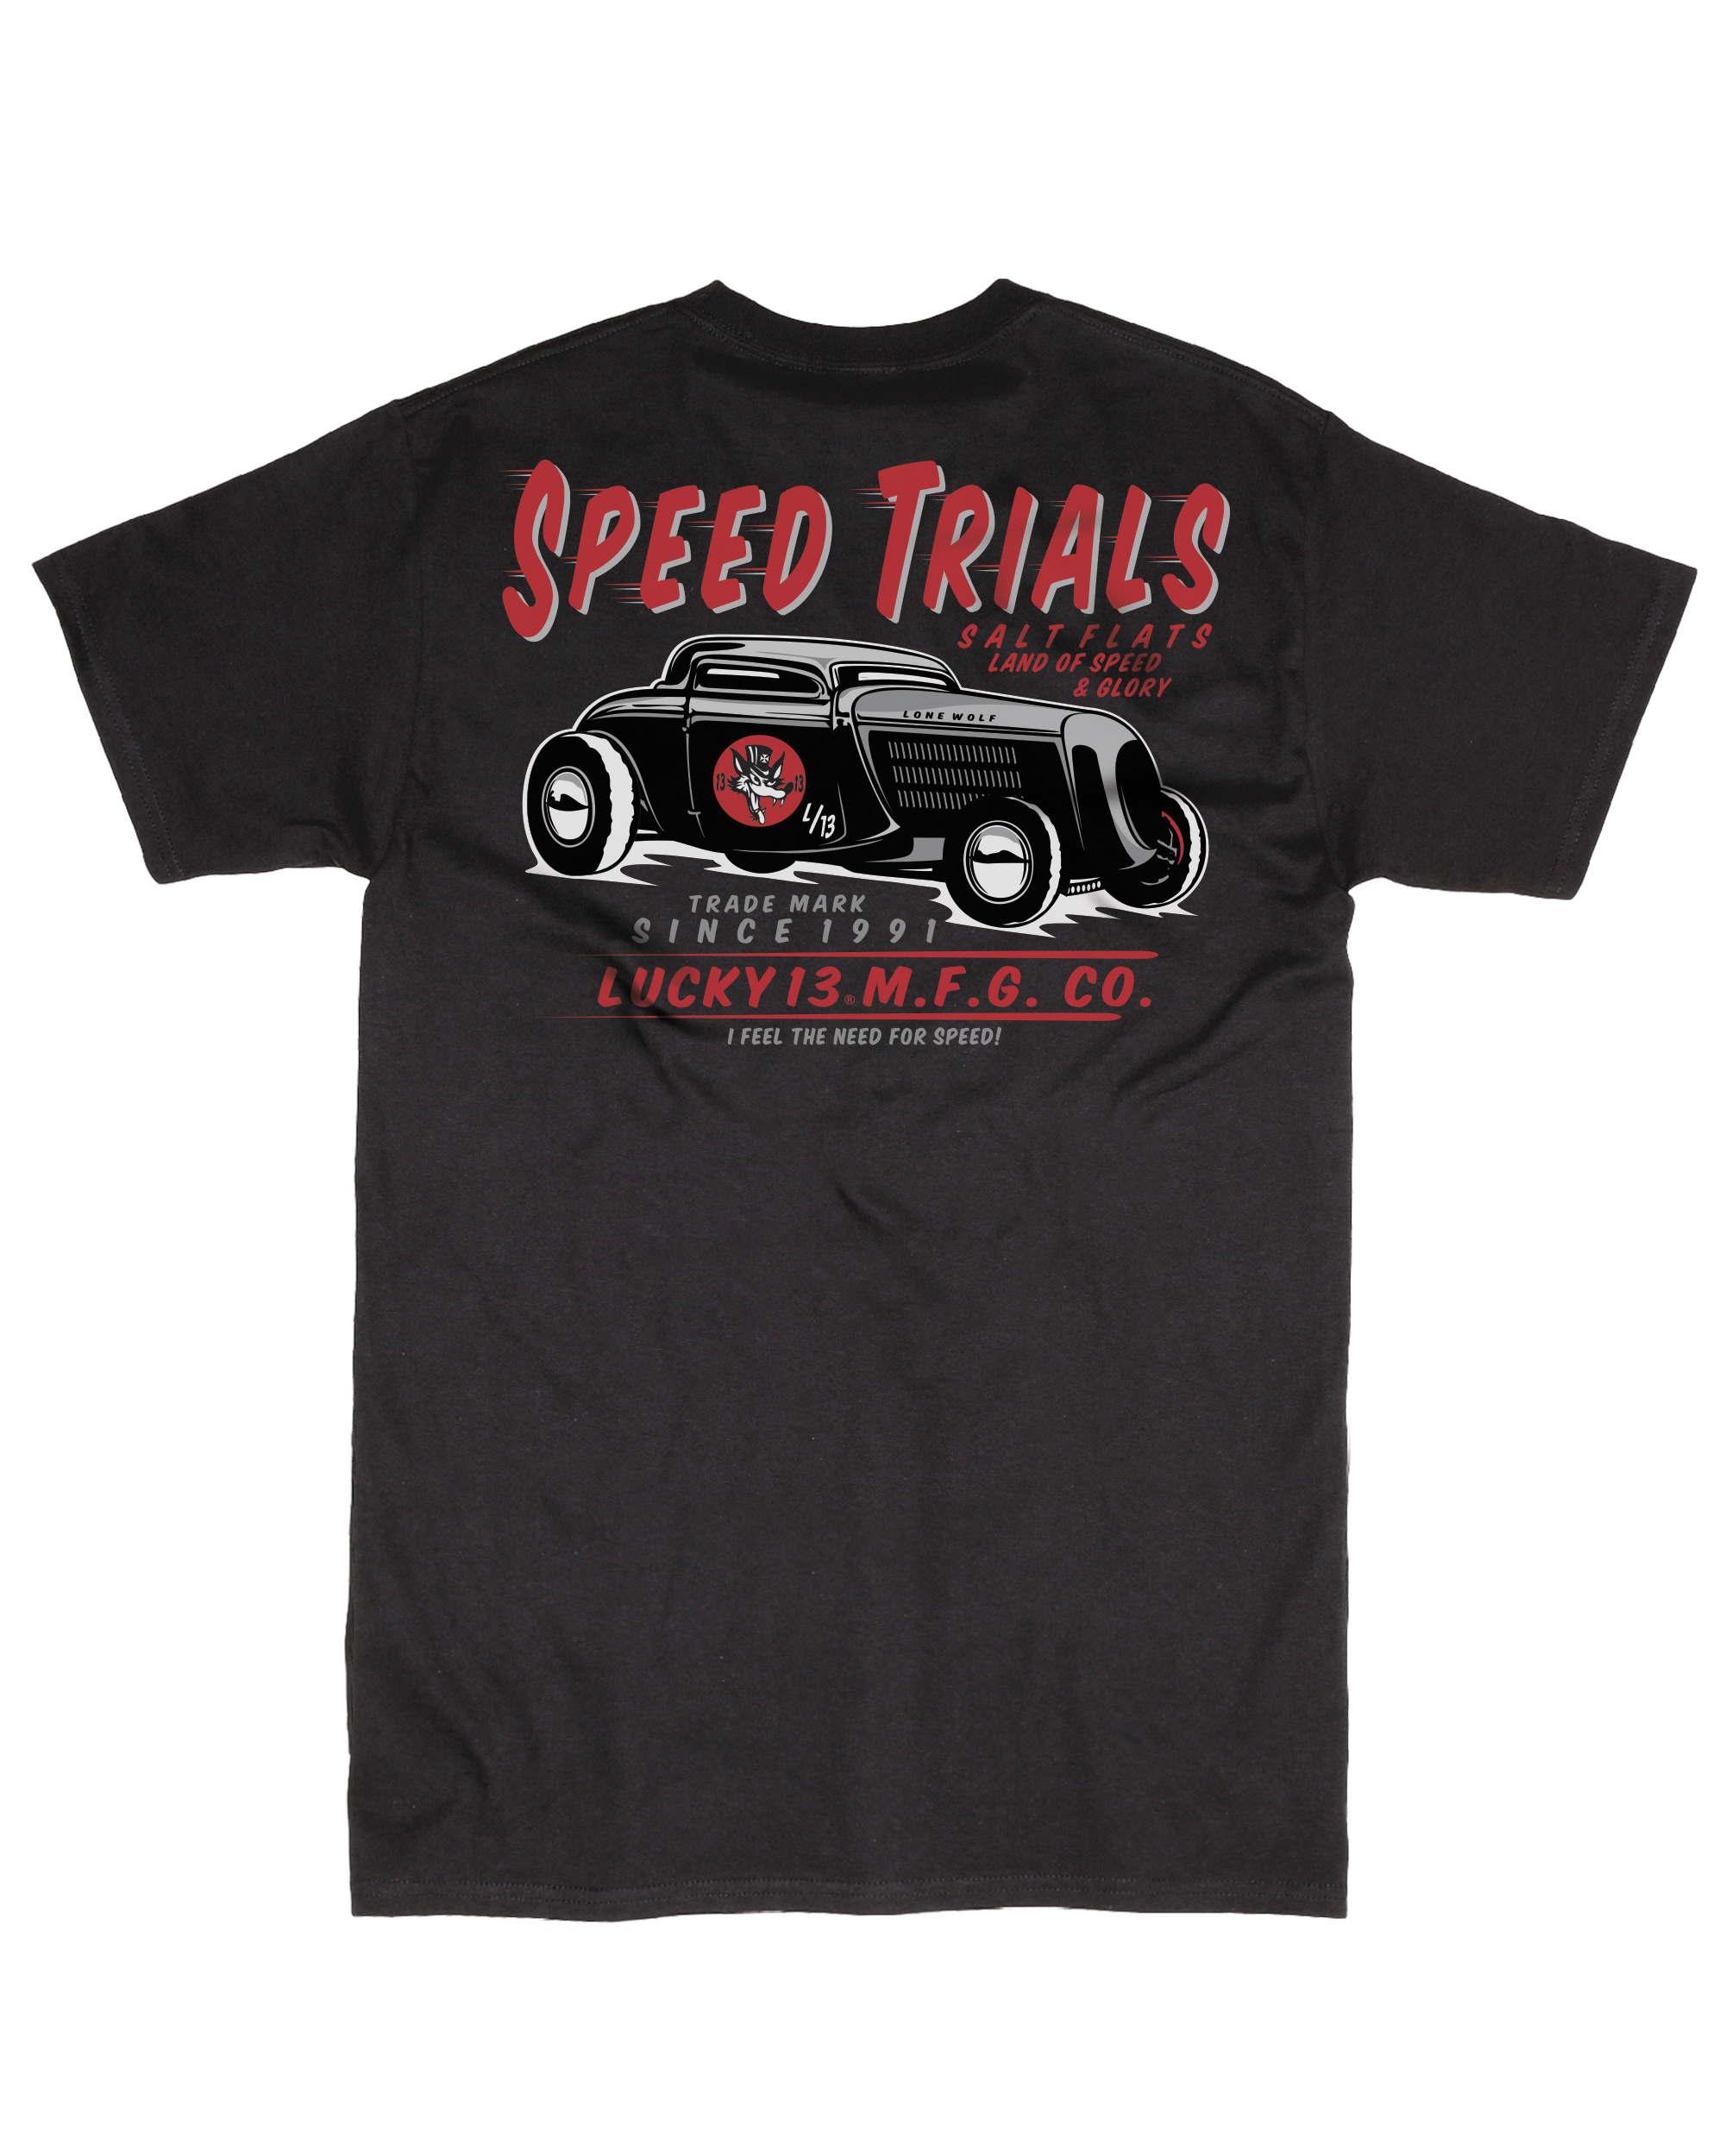 The SPEED TRIALS Tee